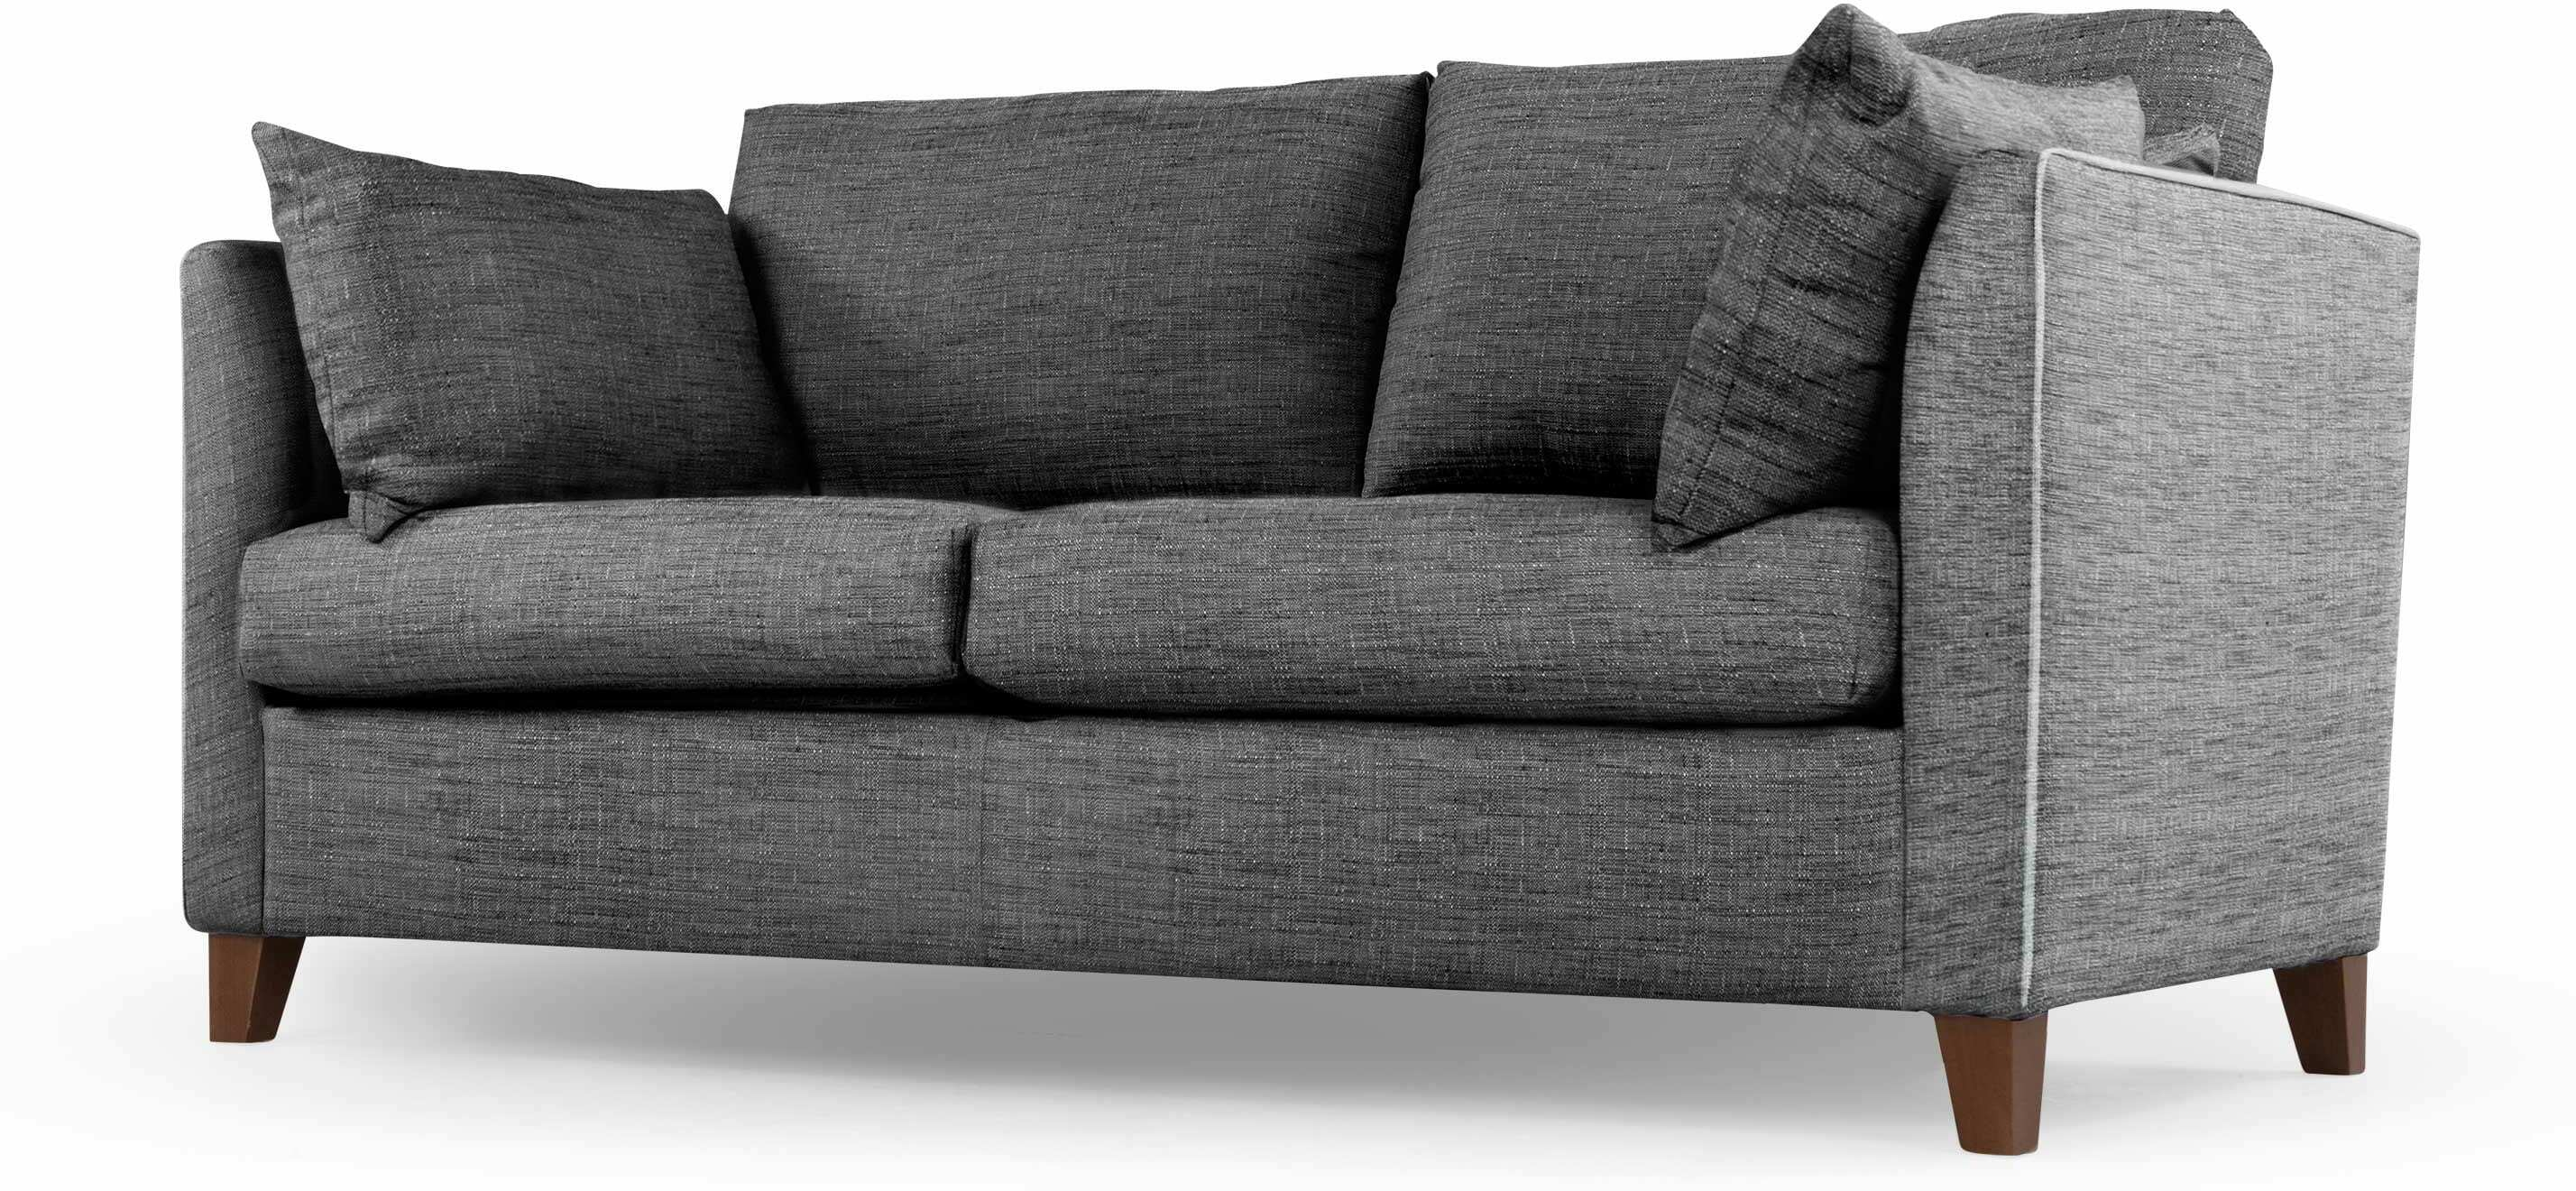 memory foam chair bed uk fishing nash buy cheap sofa compare sofas prices for